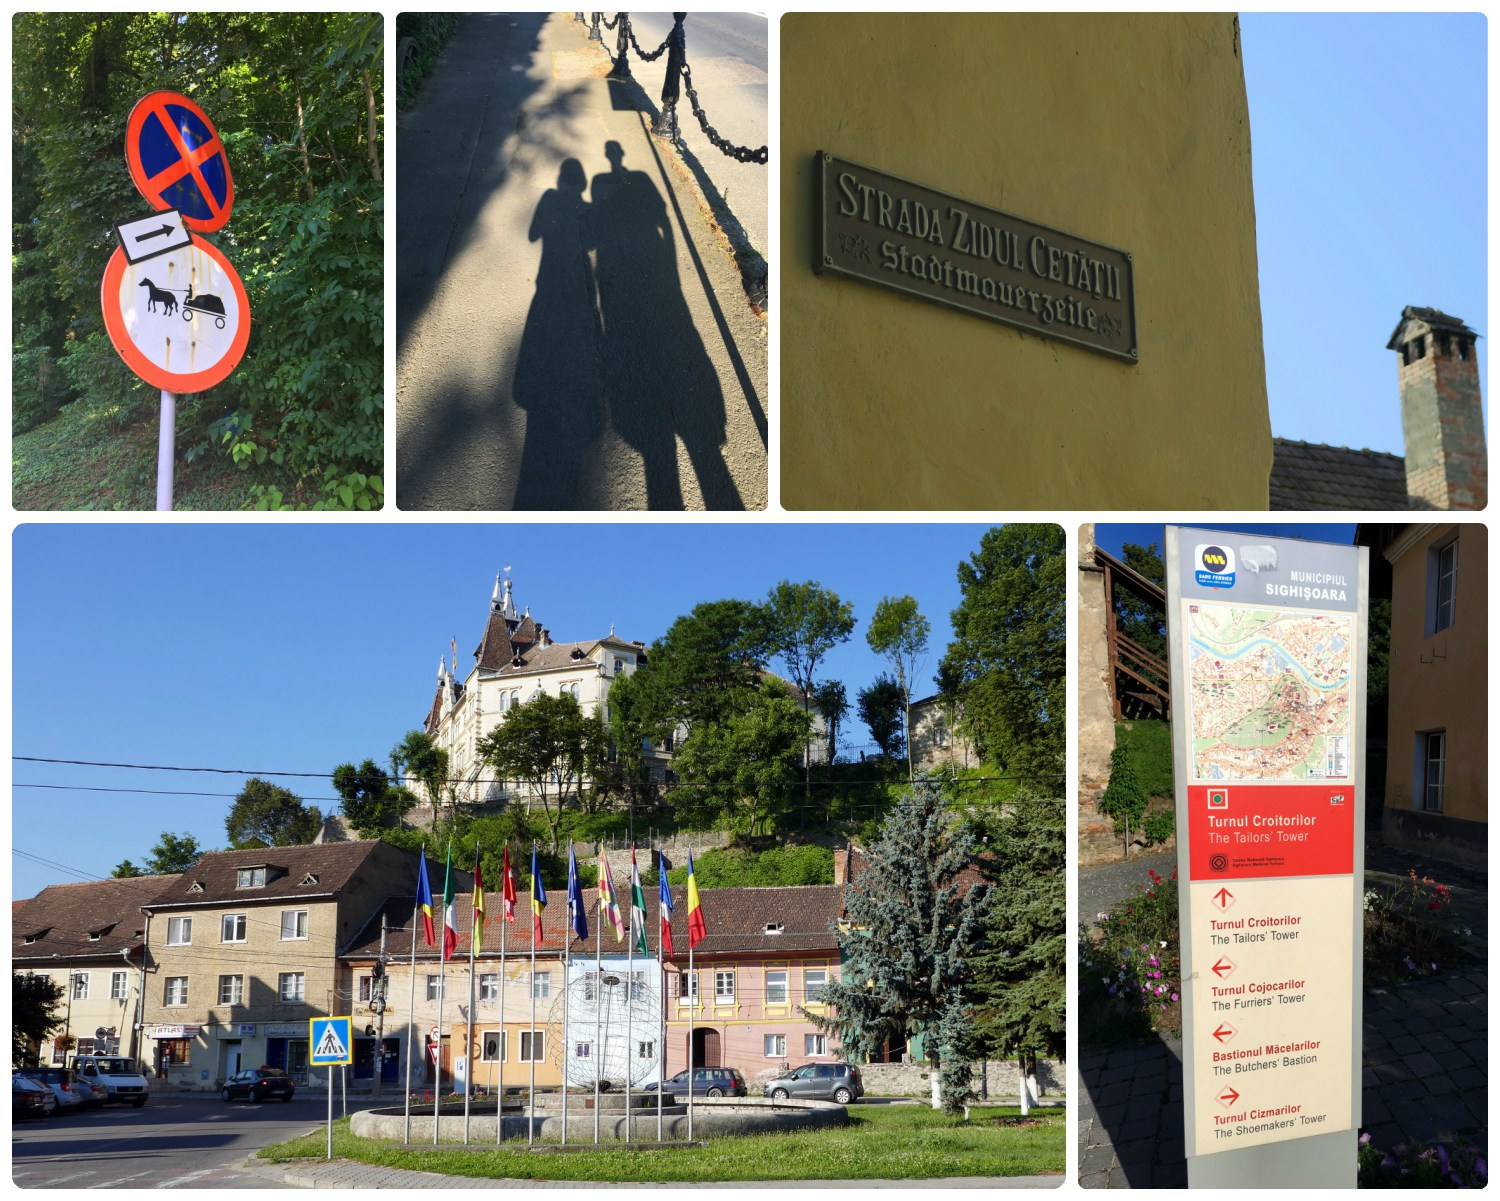 Sighisoara is the perfect town to explore by foot! Clockwise (from the top): How often do you get to see a street sign warning drivers of horse drawn carriages?!, you can't see it but there's a high probability that Sergio is rolling his eyes as Shannon takes  another  picture of our shadows while saying 'but it's so romantic!', even the street signs in the citadel look like they're from a fairy tale, throughout Sighisoara are signs with maps and arrows to point you in the correct direction, taken from the bottom of the hill and looking up to the Citadel.